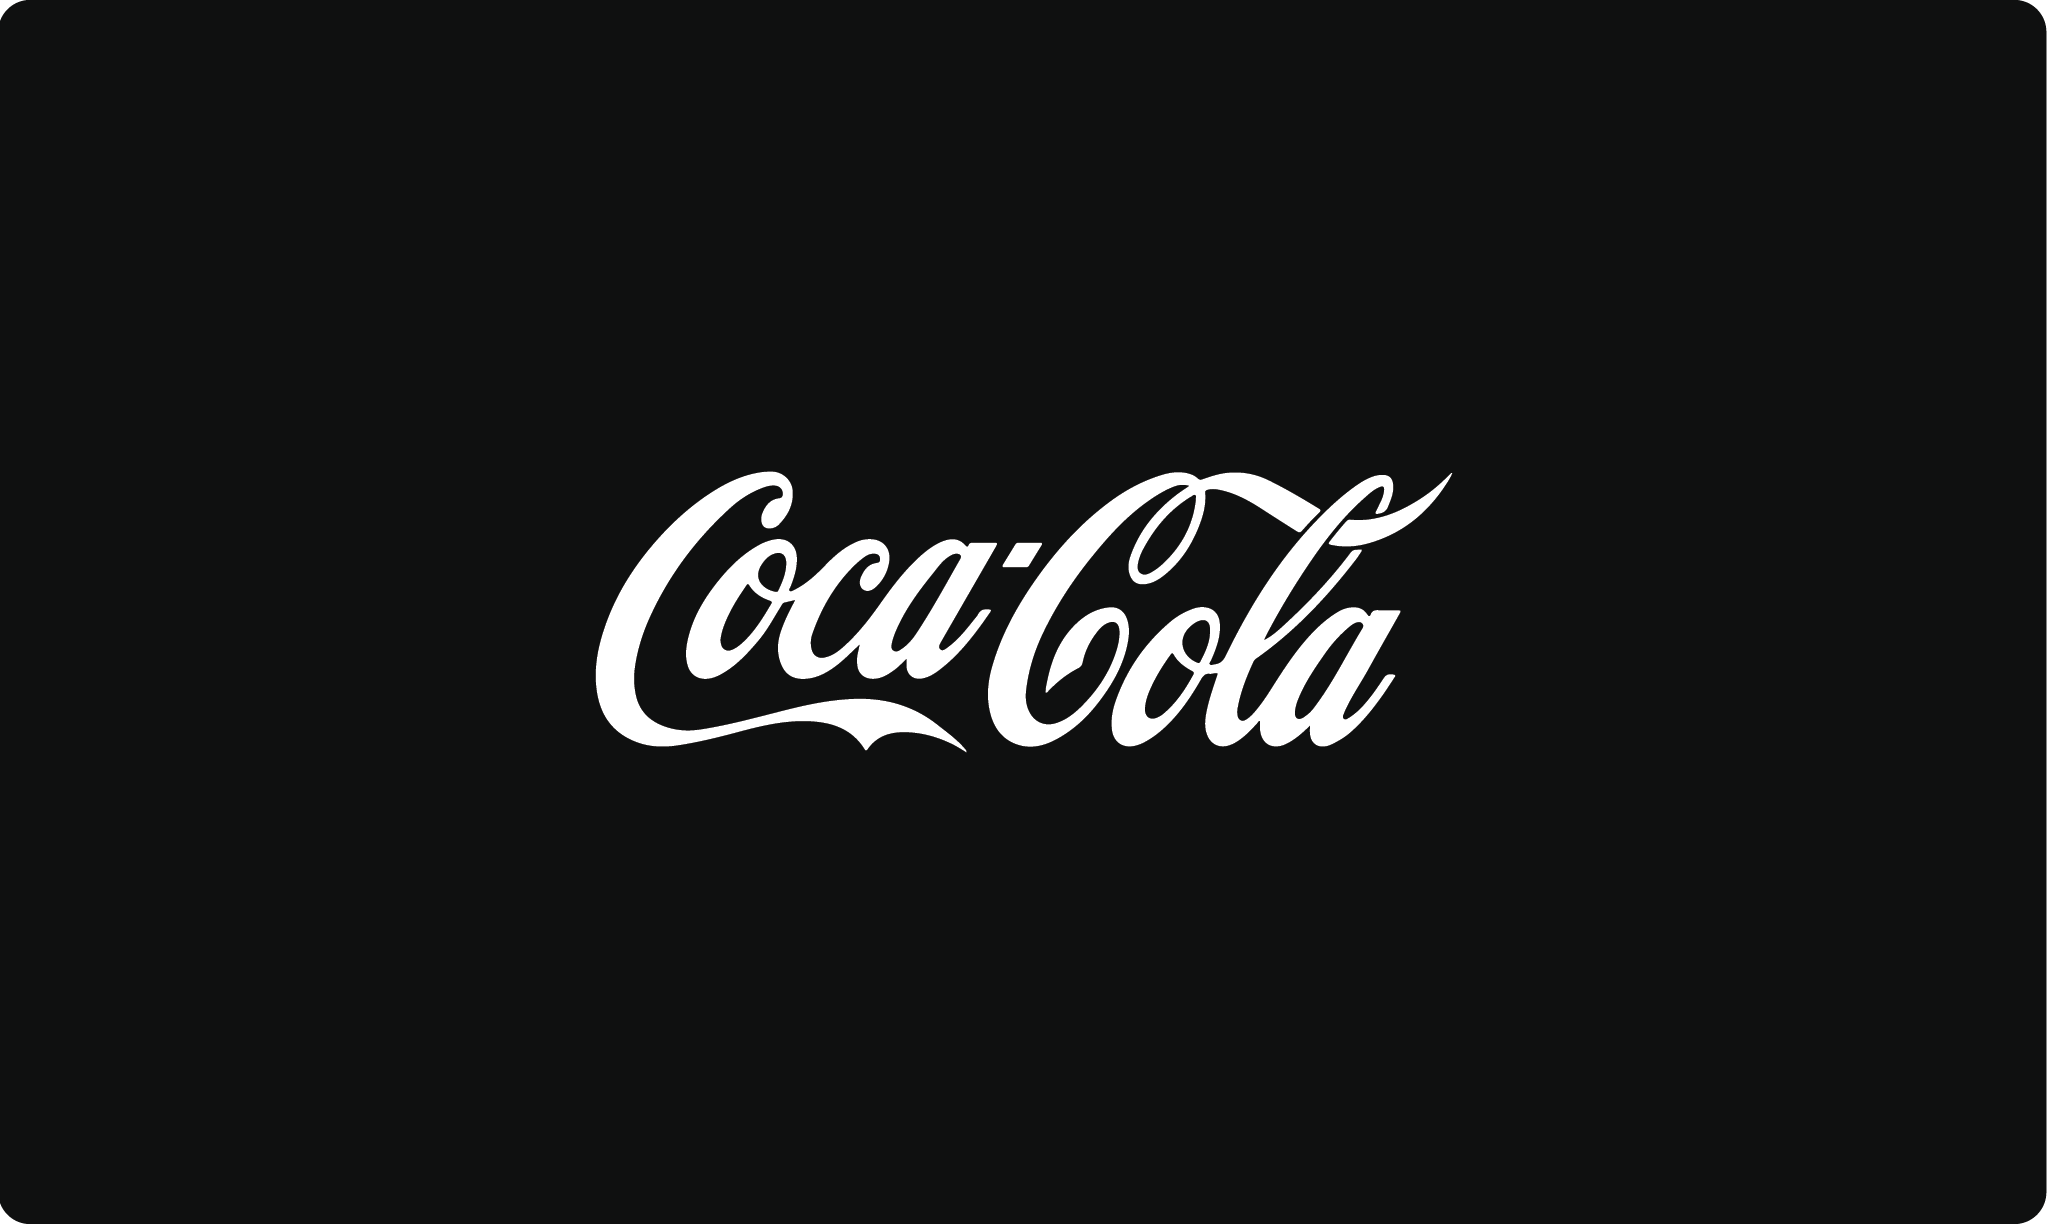 The iconic Coca-Cola logo in black and white